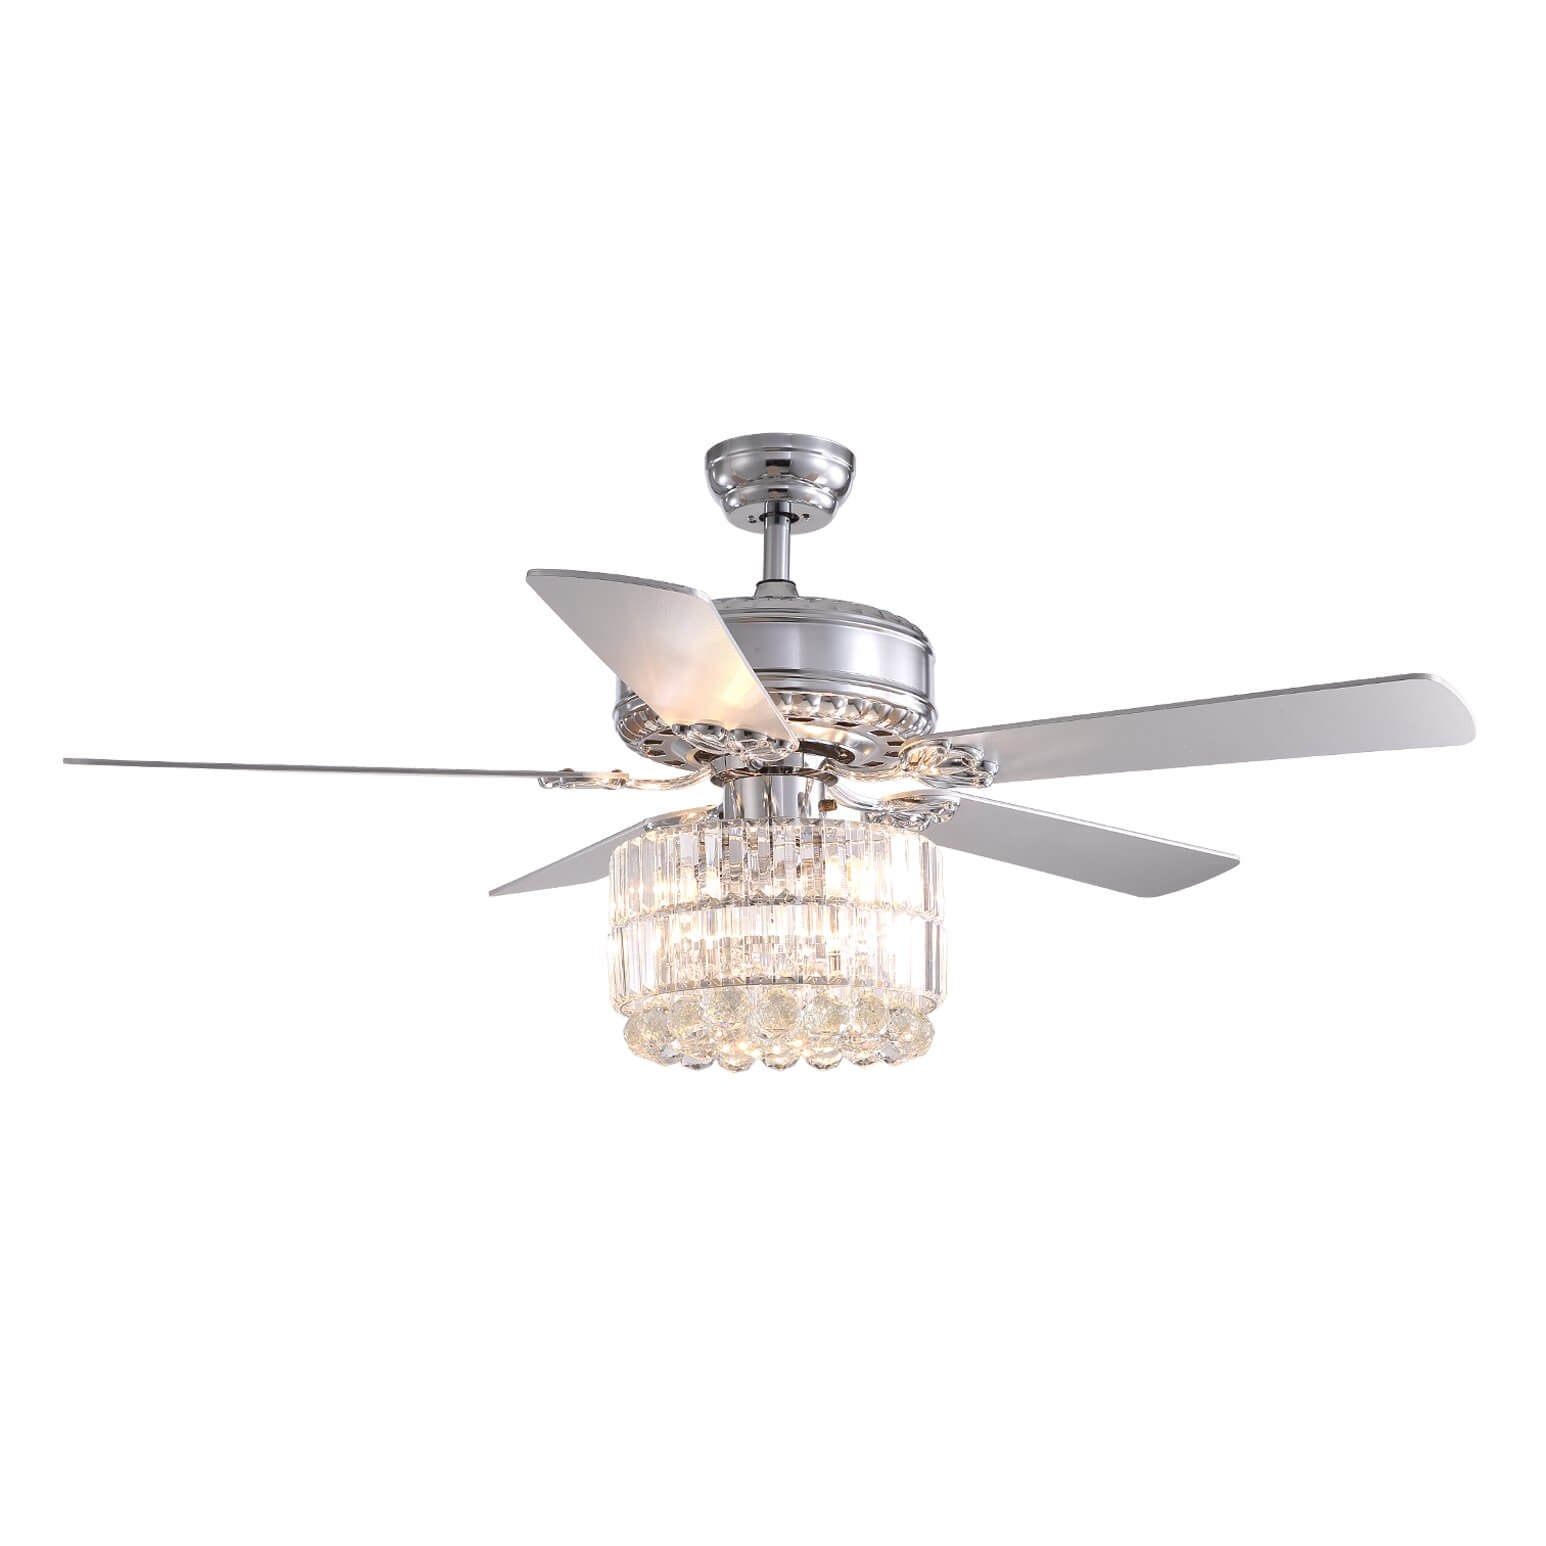 Reversible  Crystal Ceiling Fan with Wood Blades